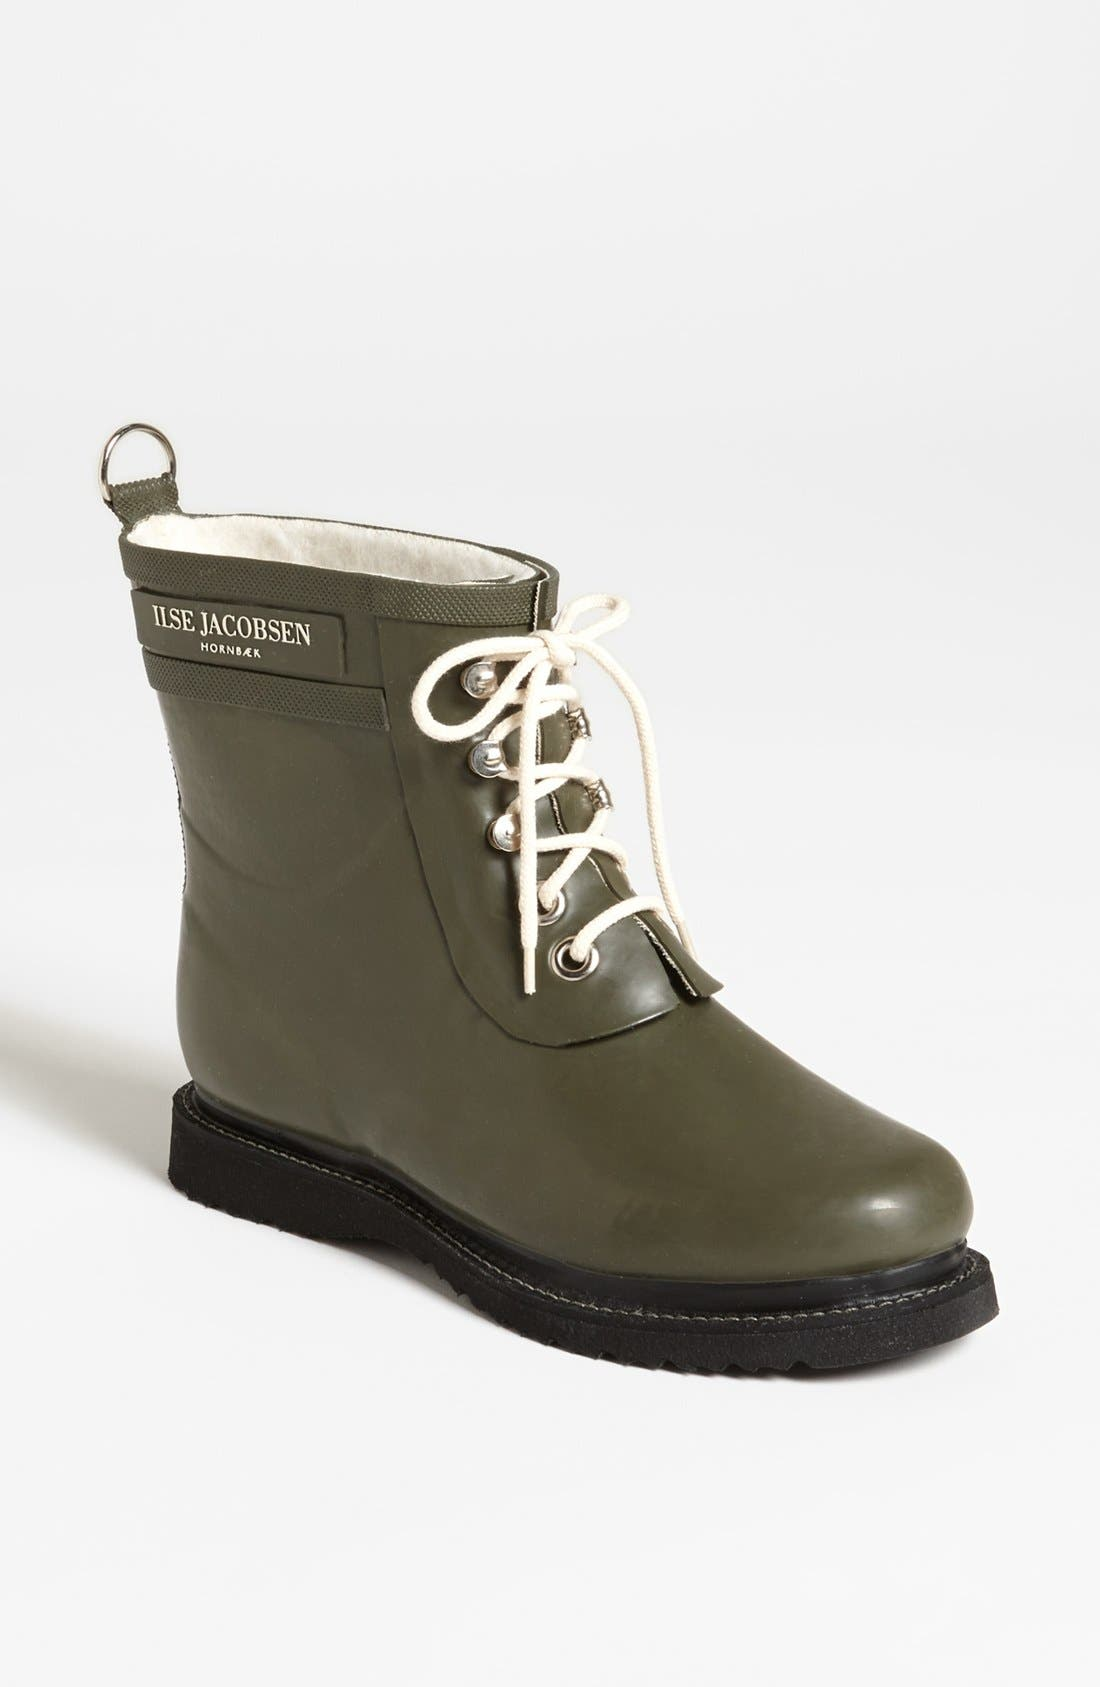 ILSE JACOBSEN 'Rub' Boot in Army